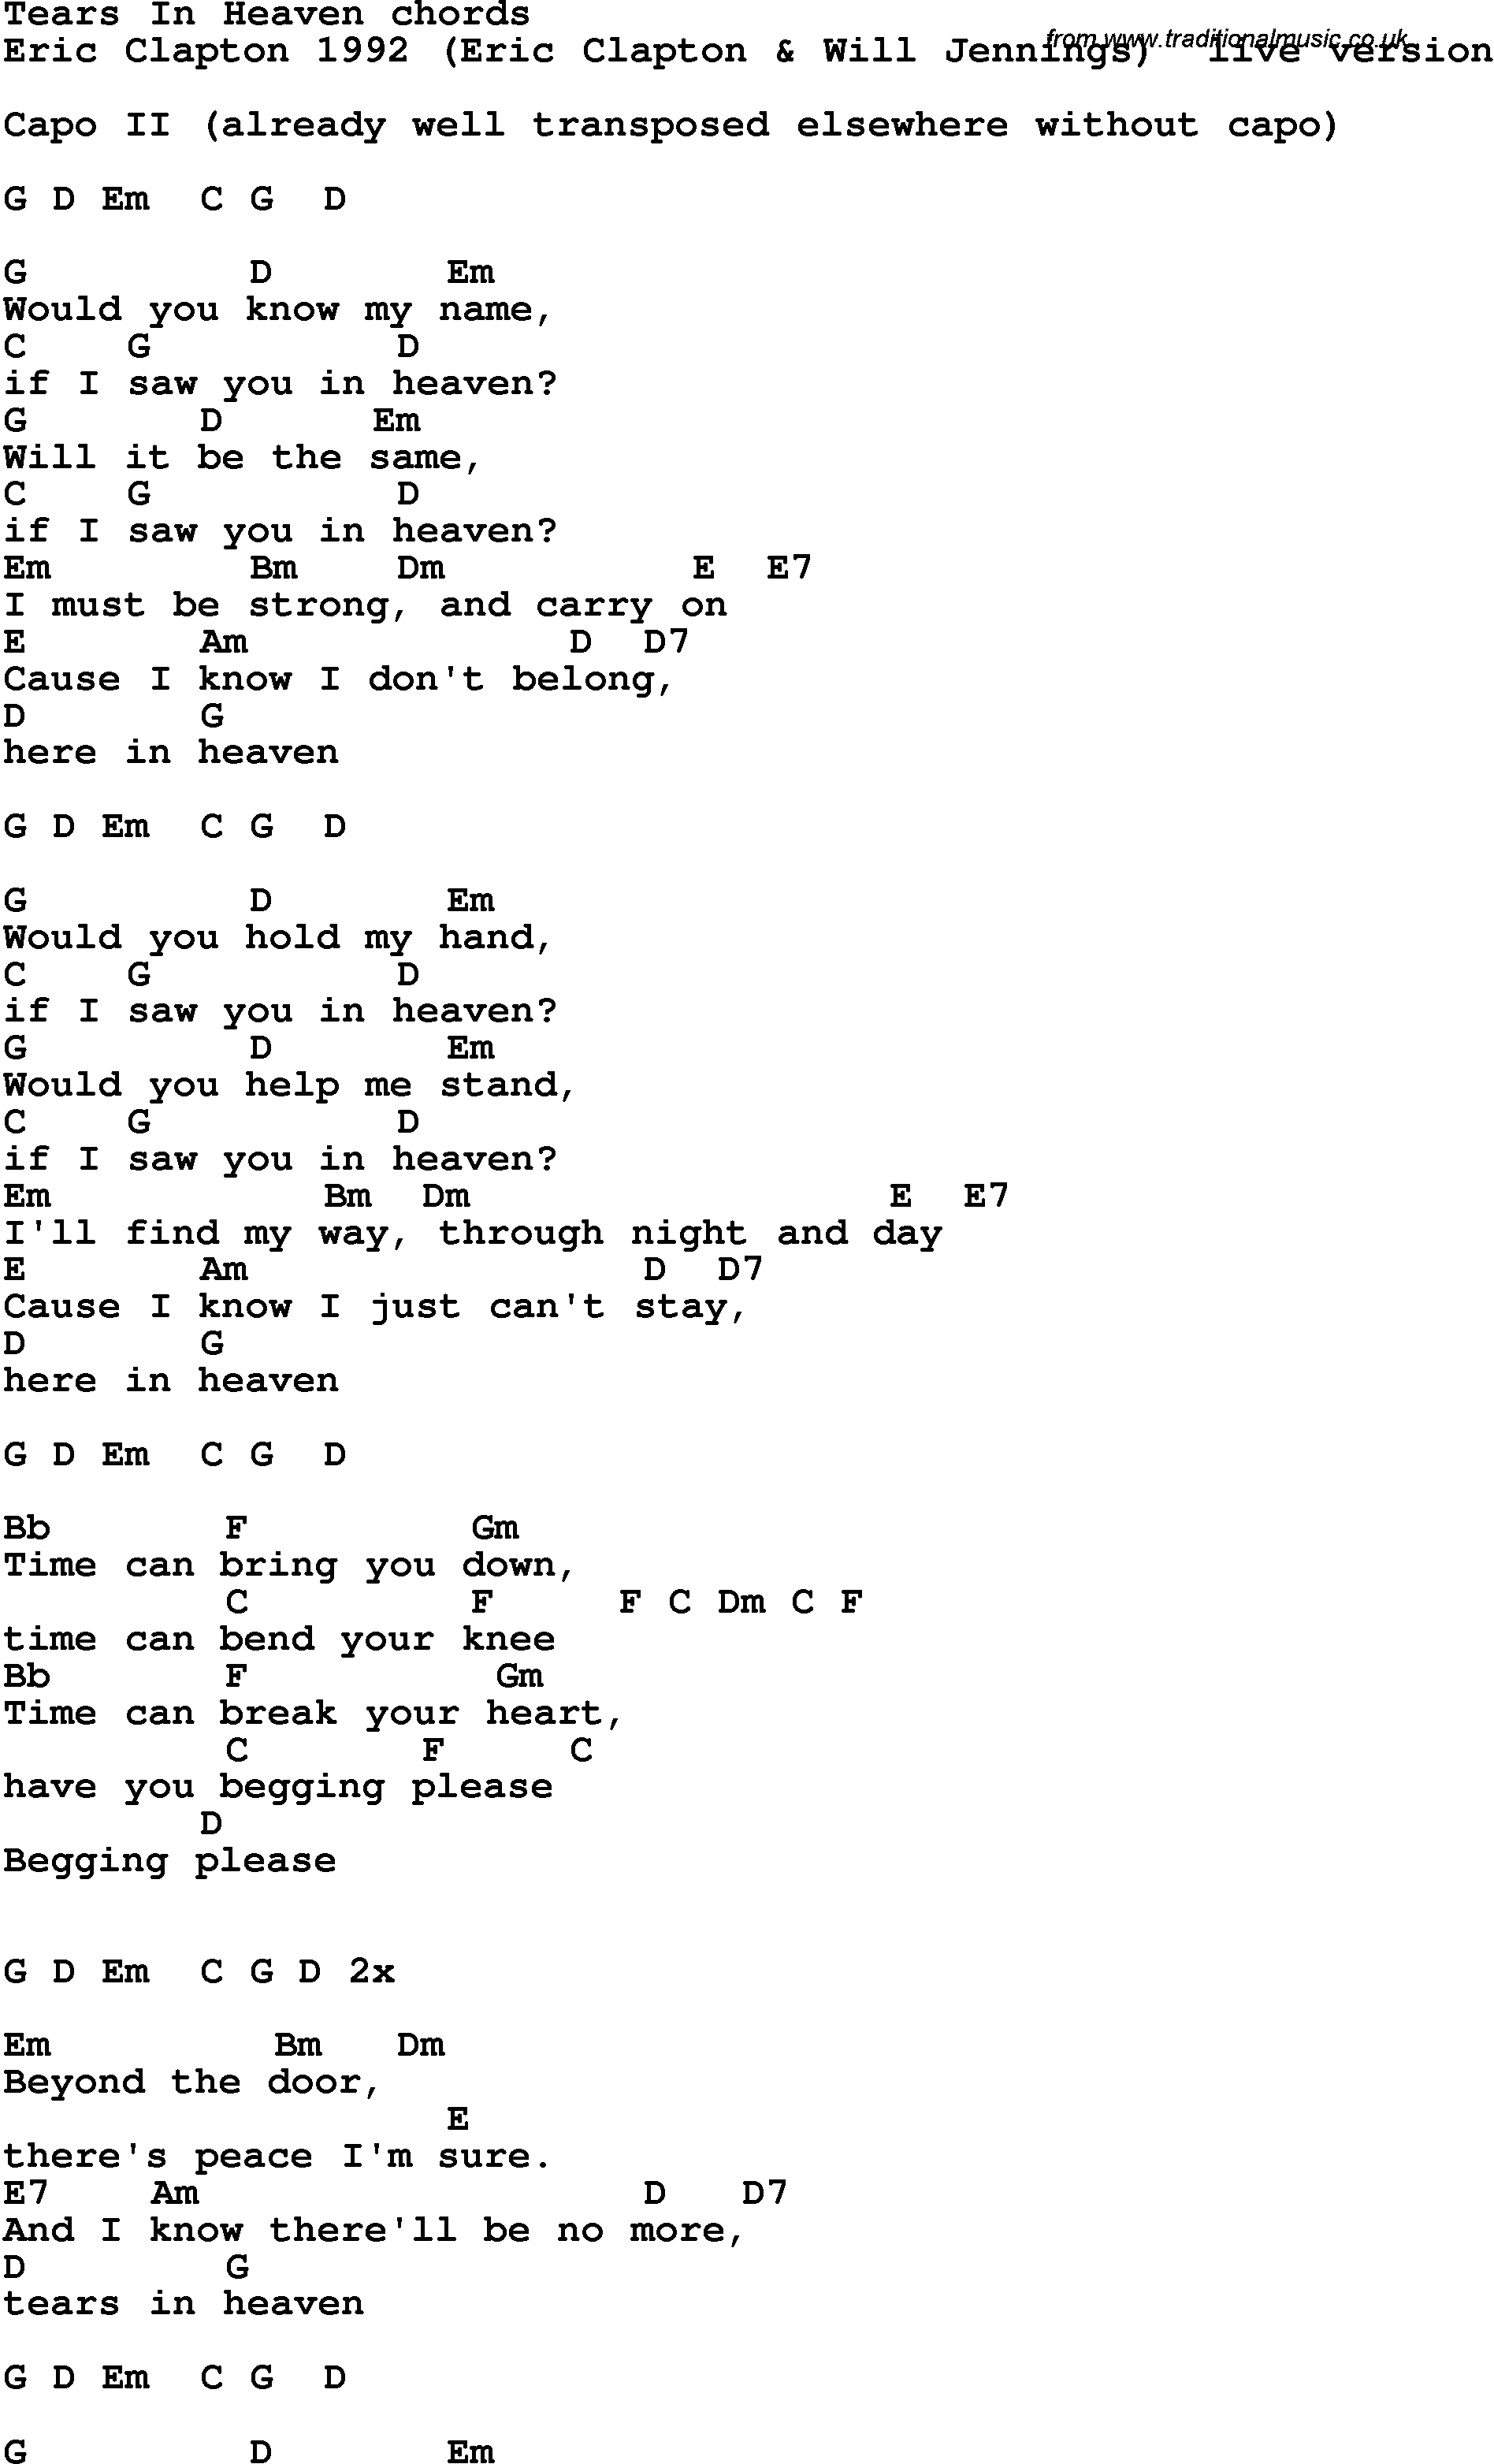 Song Lyrics With Guitar Chords For Tears In Heaven Eric Clapton